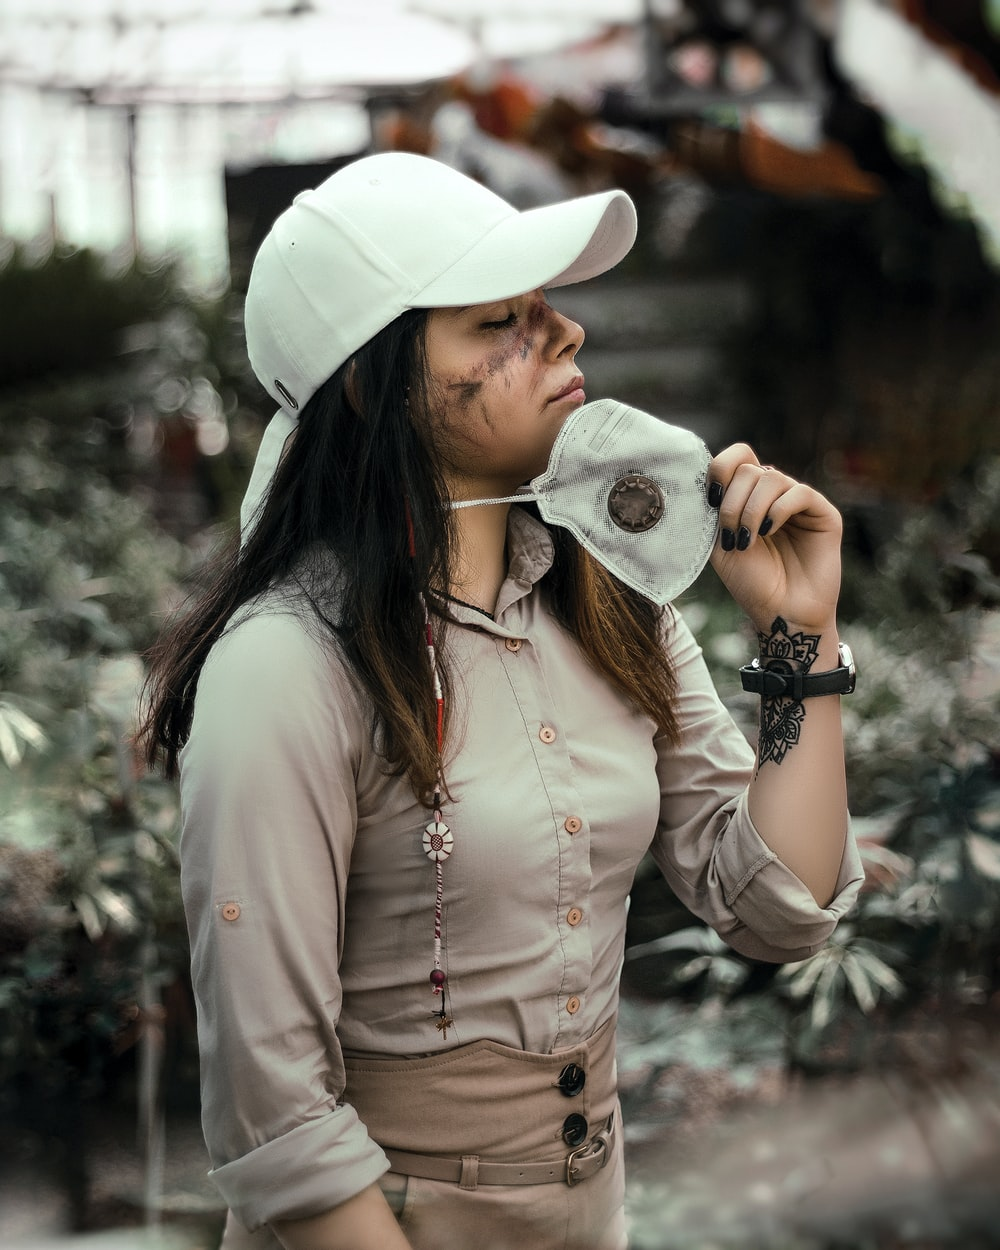 woman in white hat and white long sleeve shirt holding black and white camera